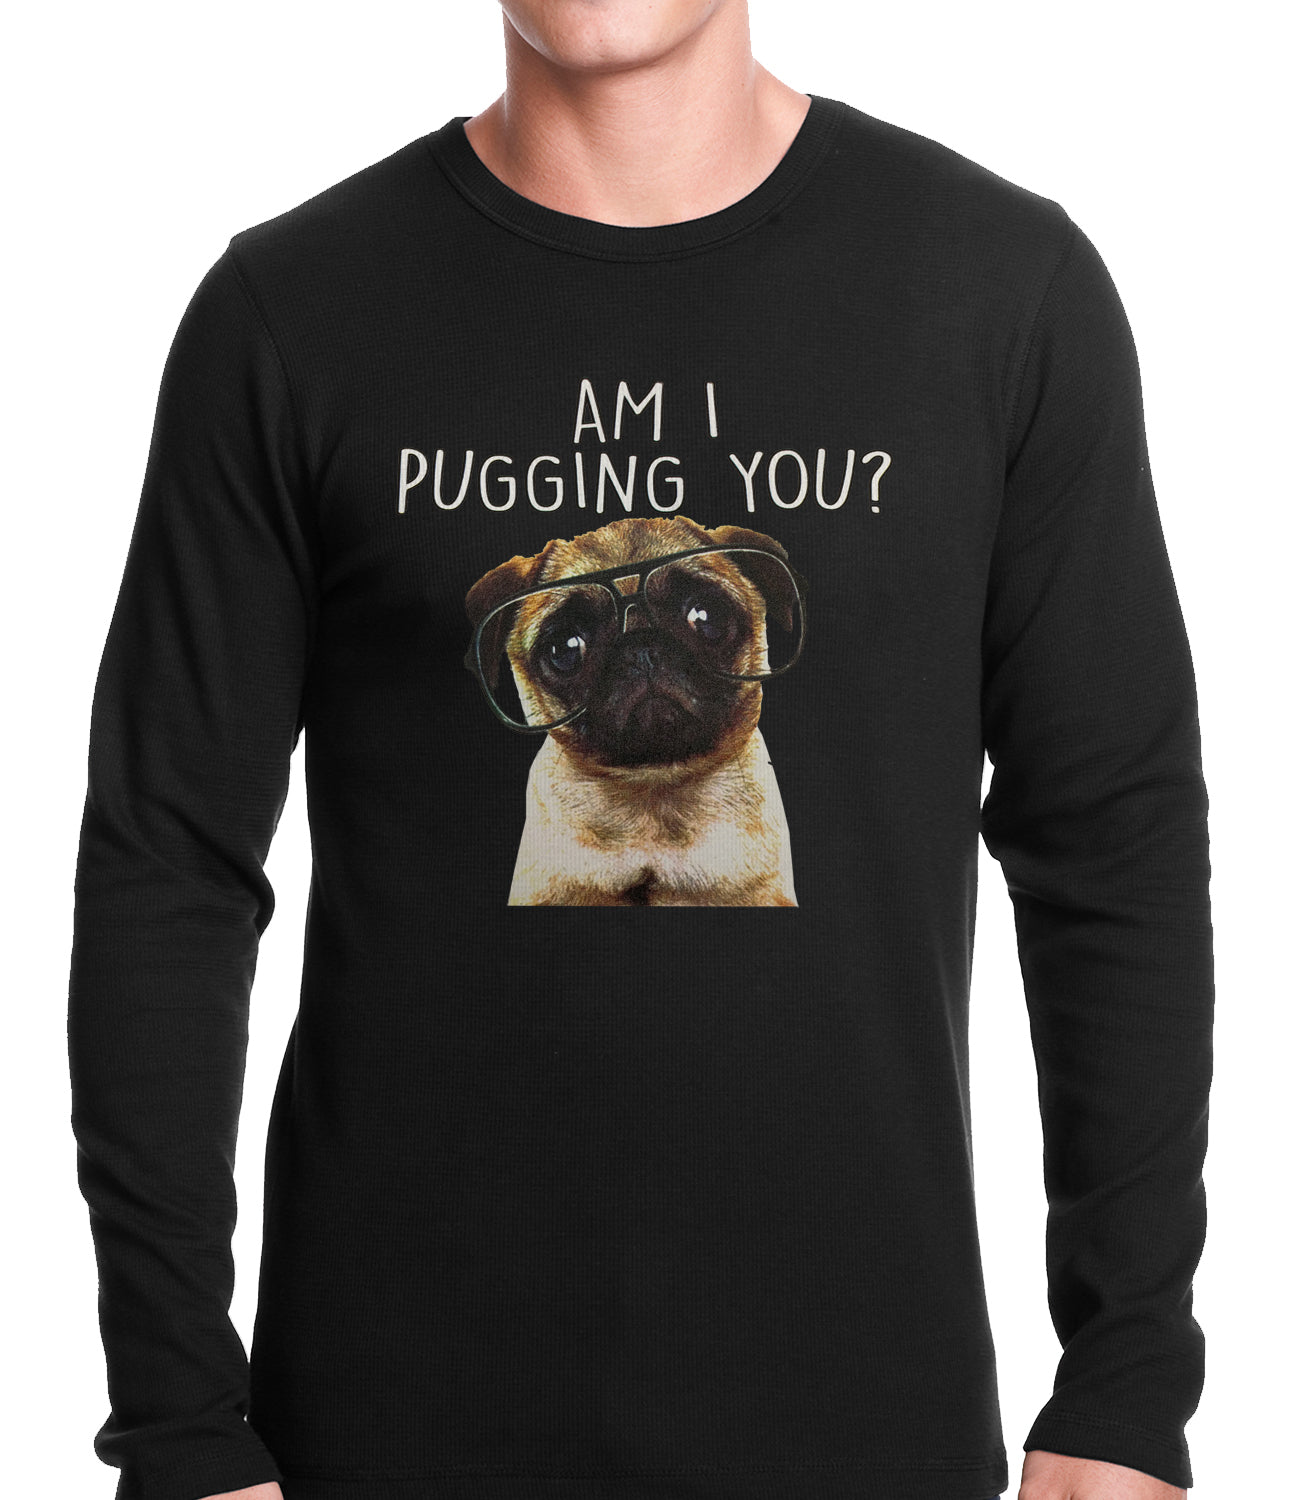 Am I Pugging You Funny Pug Thermal Shirt